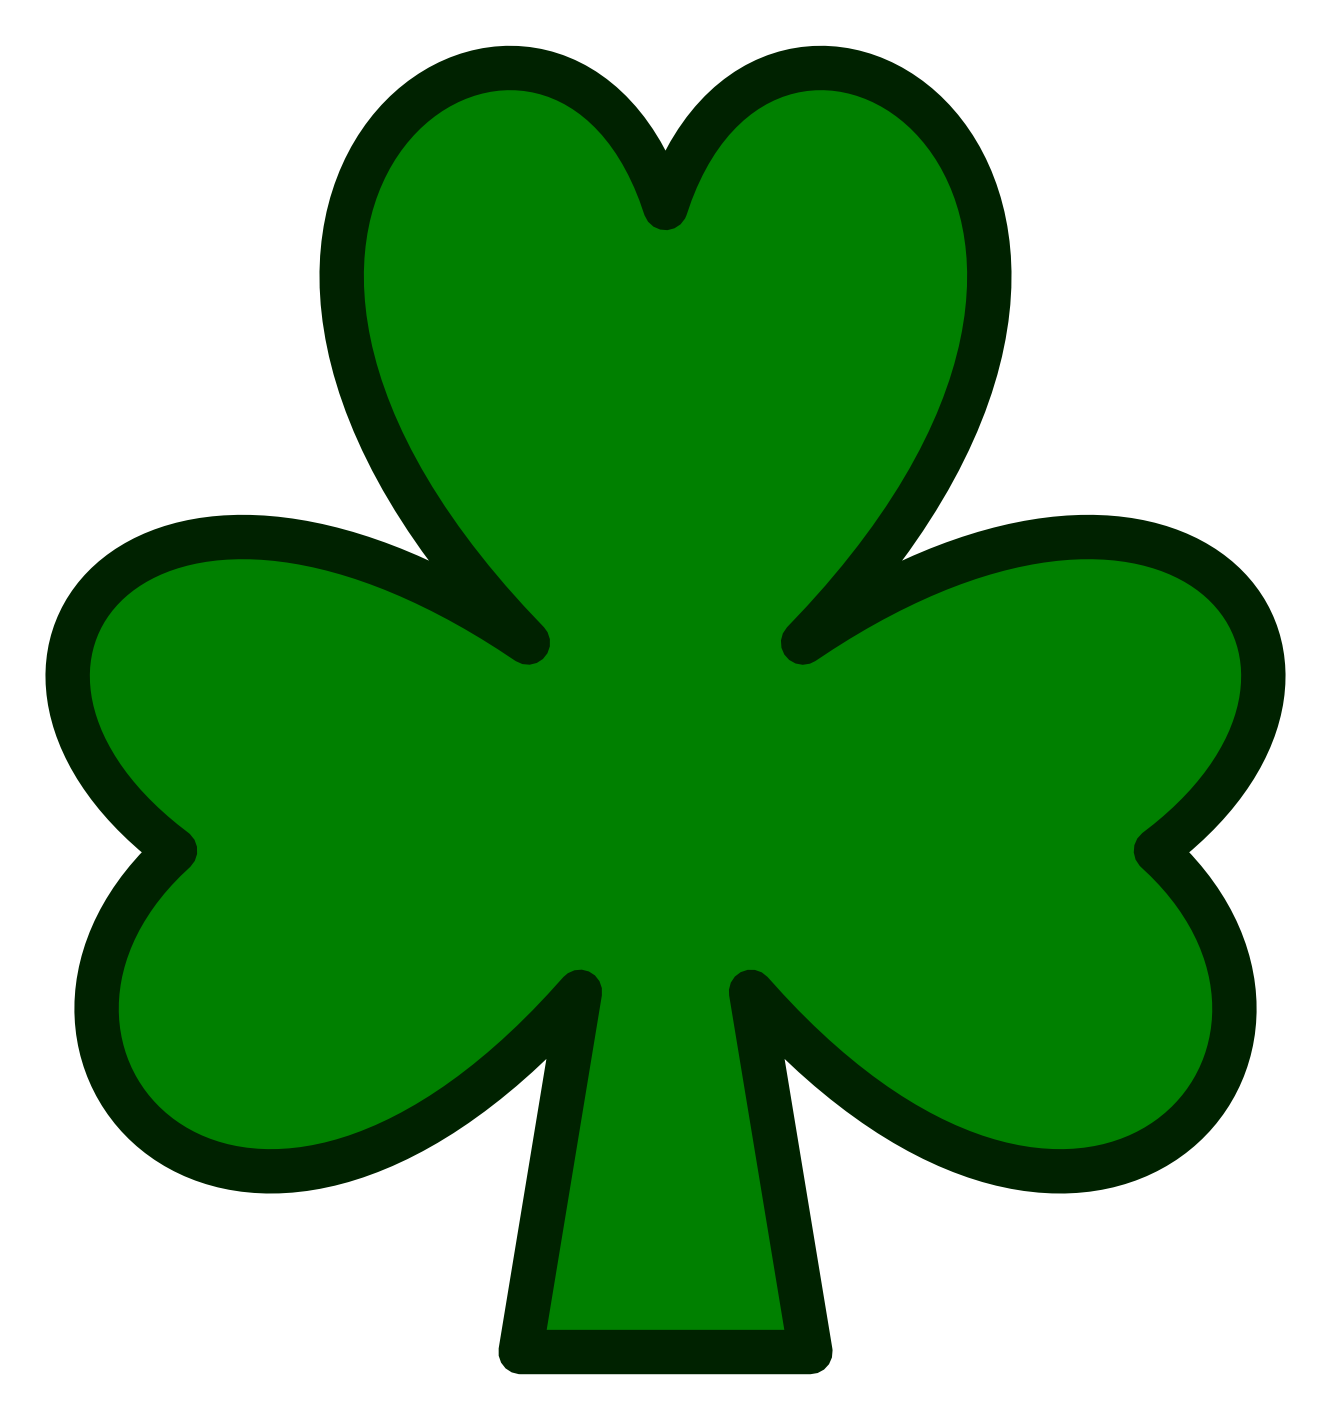 Clipart shammrock picture freeuse Free Shamrock Clip Art, Download Free Clip Art, Free Clip Art on ... picture freeuse